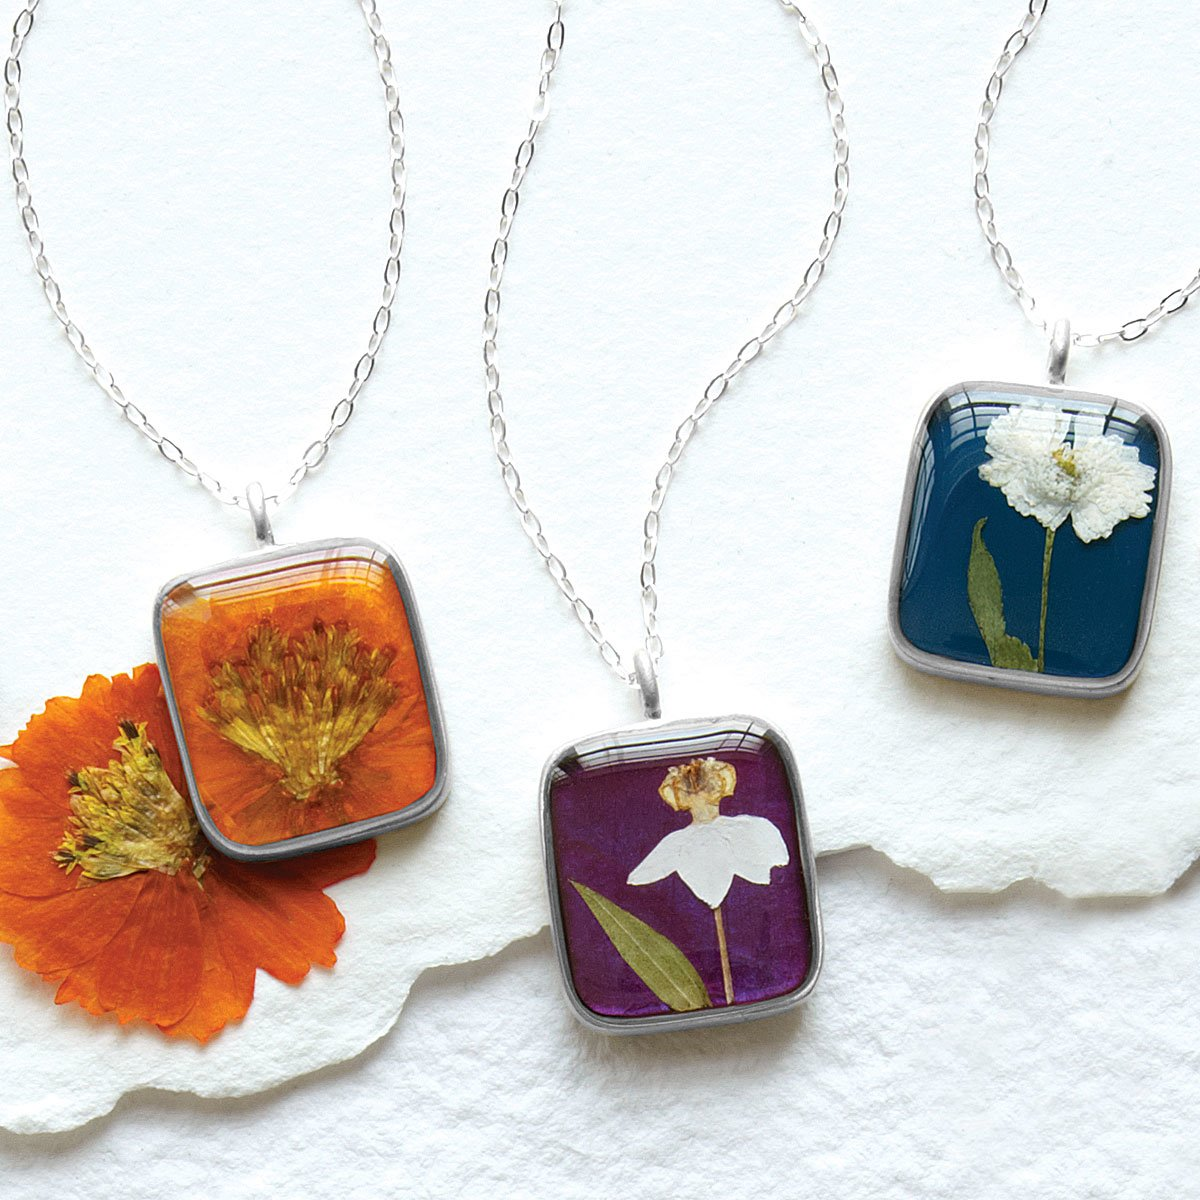 Birth month flower necklace pressed flowers birth flowers birth month flower necklace 1 thumbnail dhlflorist Gallery